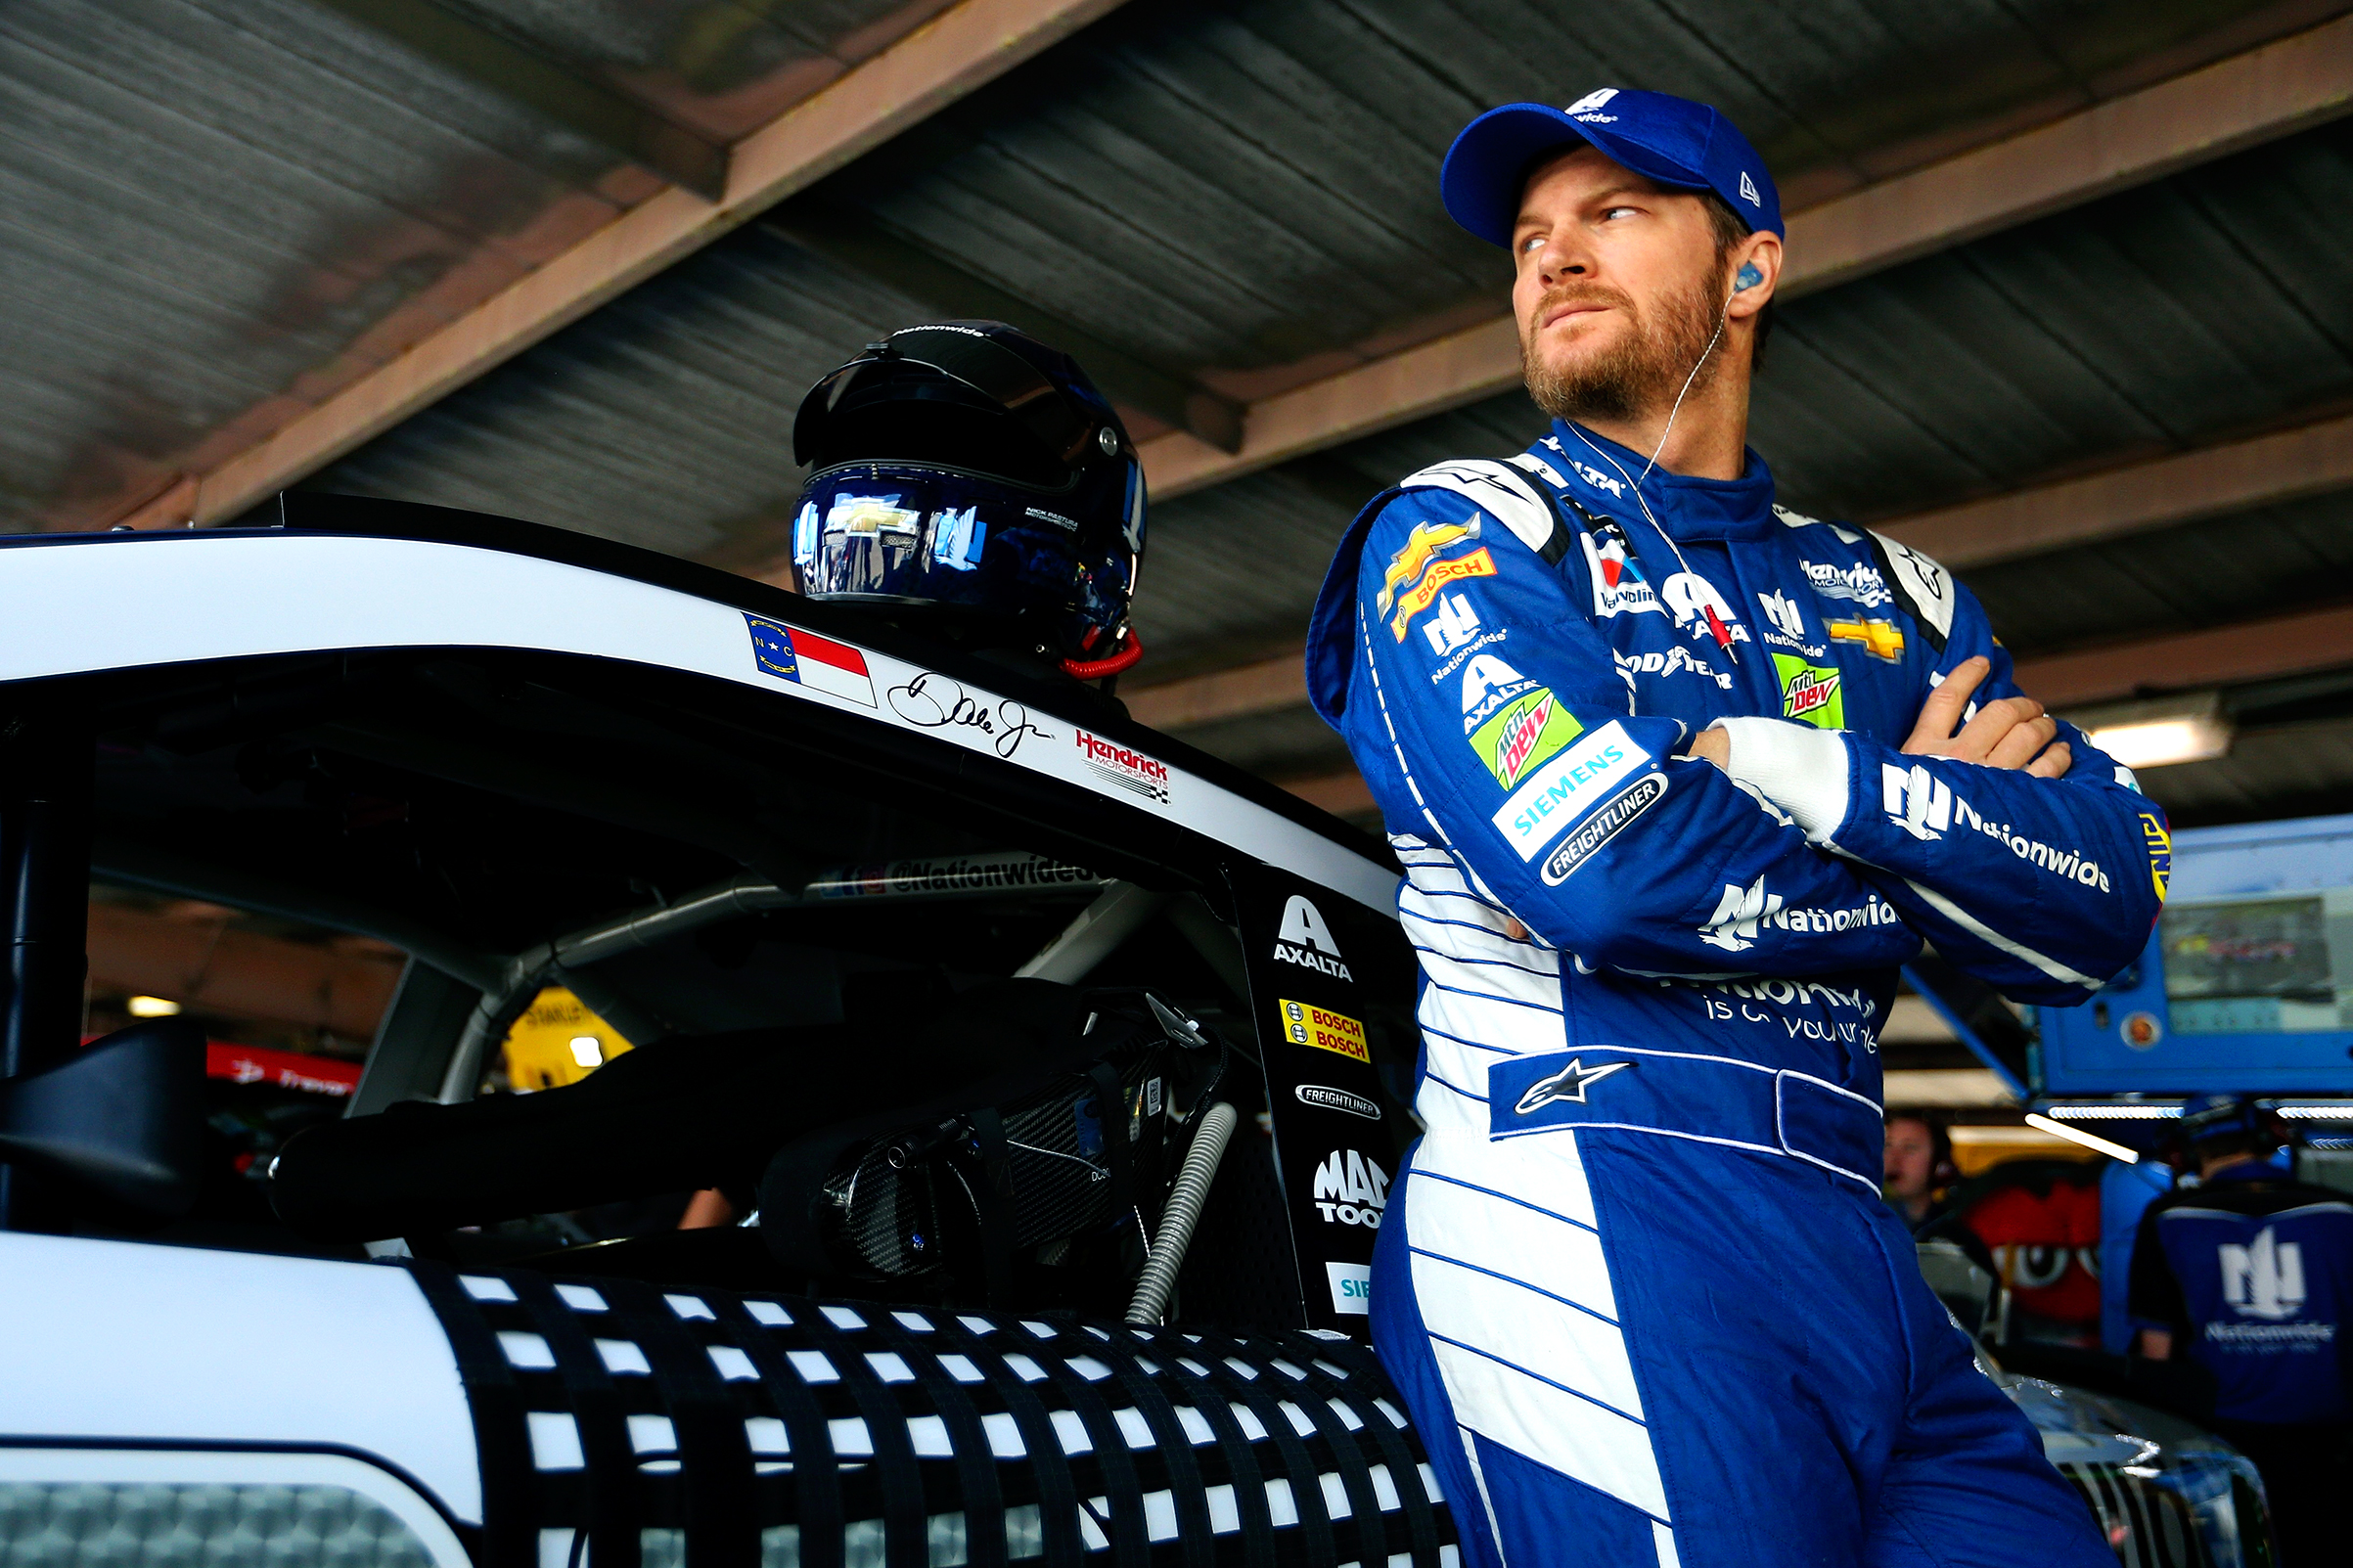 Fans have voted Earnhardt the most popular driver in NASCAR for 14 straight years